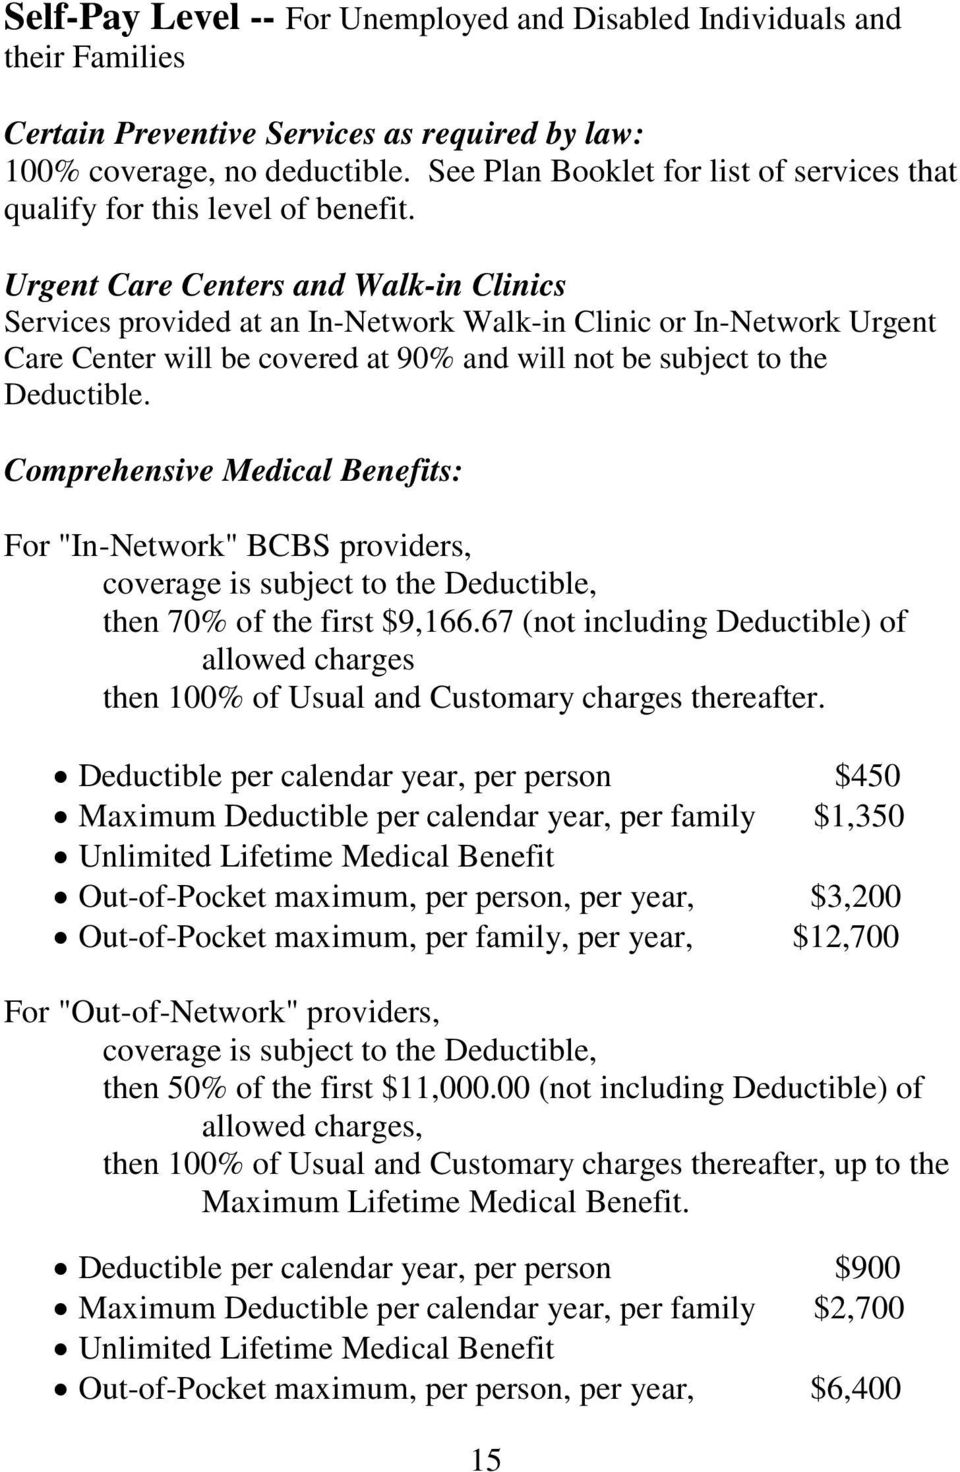 Urgent Care Centers and Walk-in Clinics Services provided at an In-Network Walk-in Clinic or In-Network Urgent Care Center will be covered at 90% and will not be subject to the Deductible.